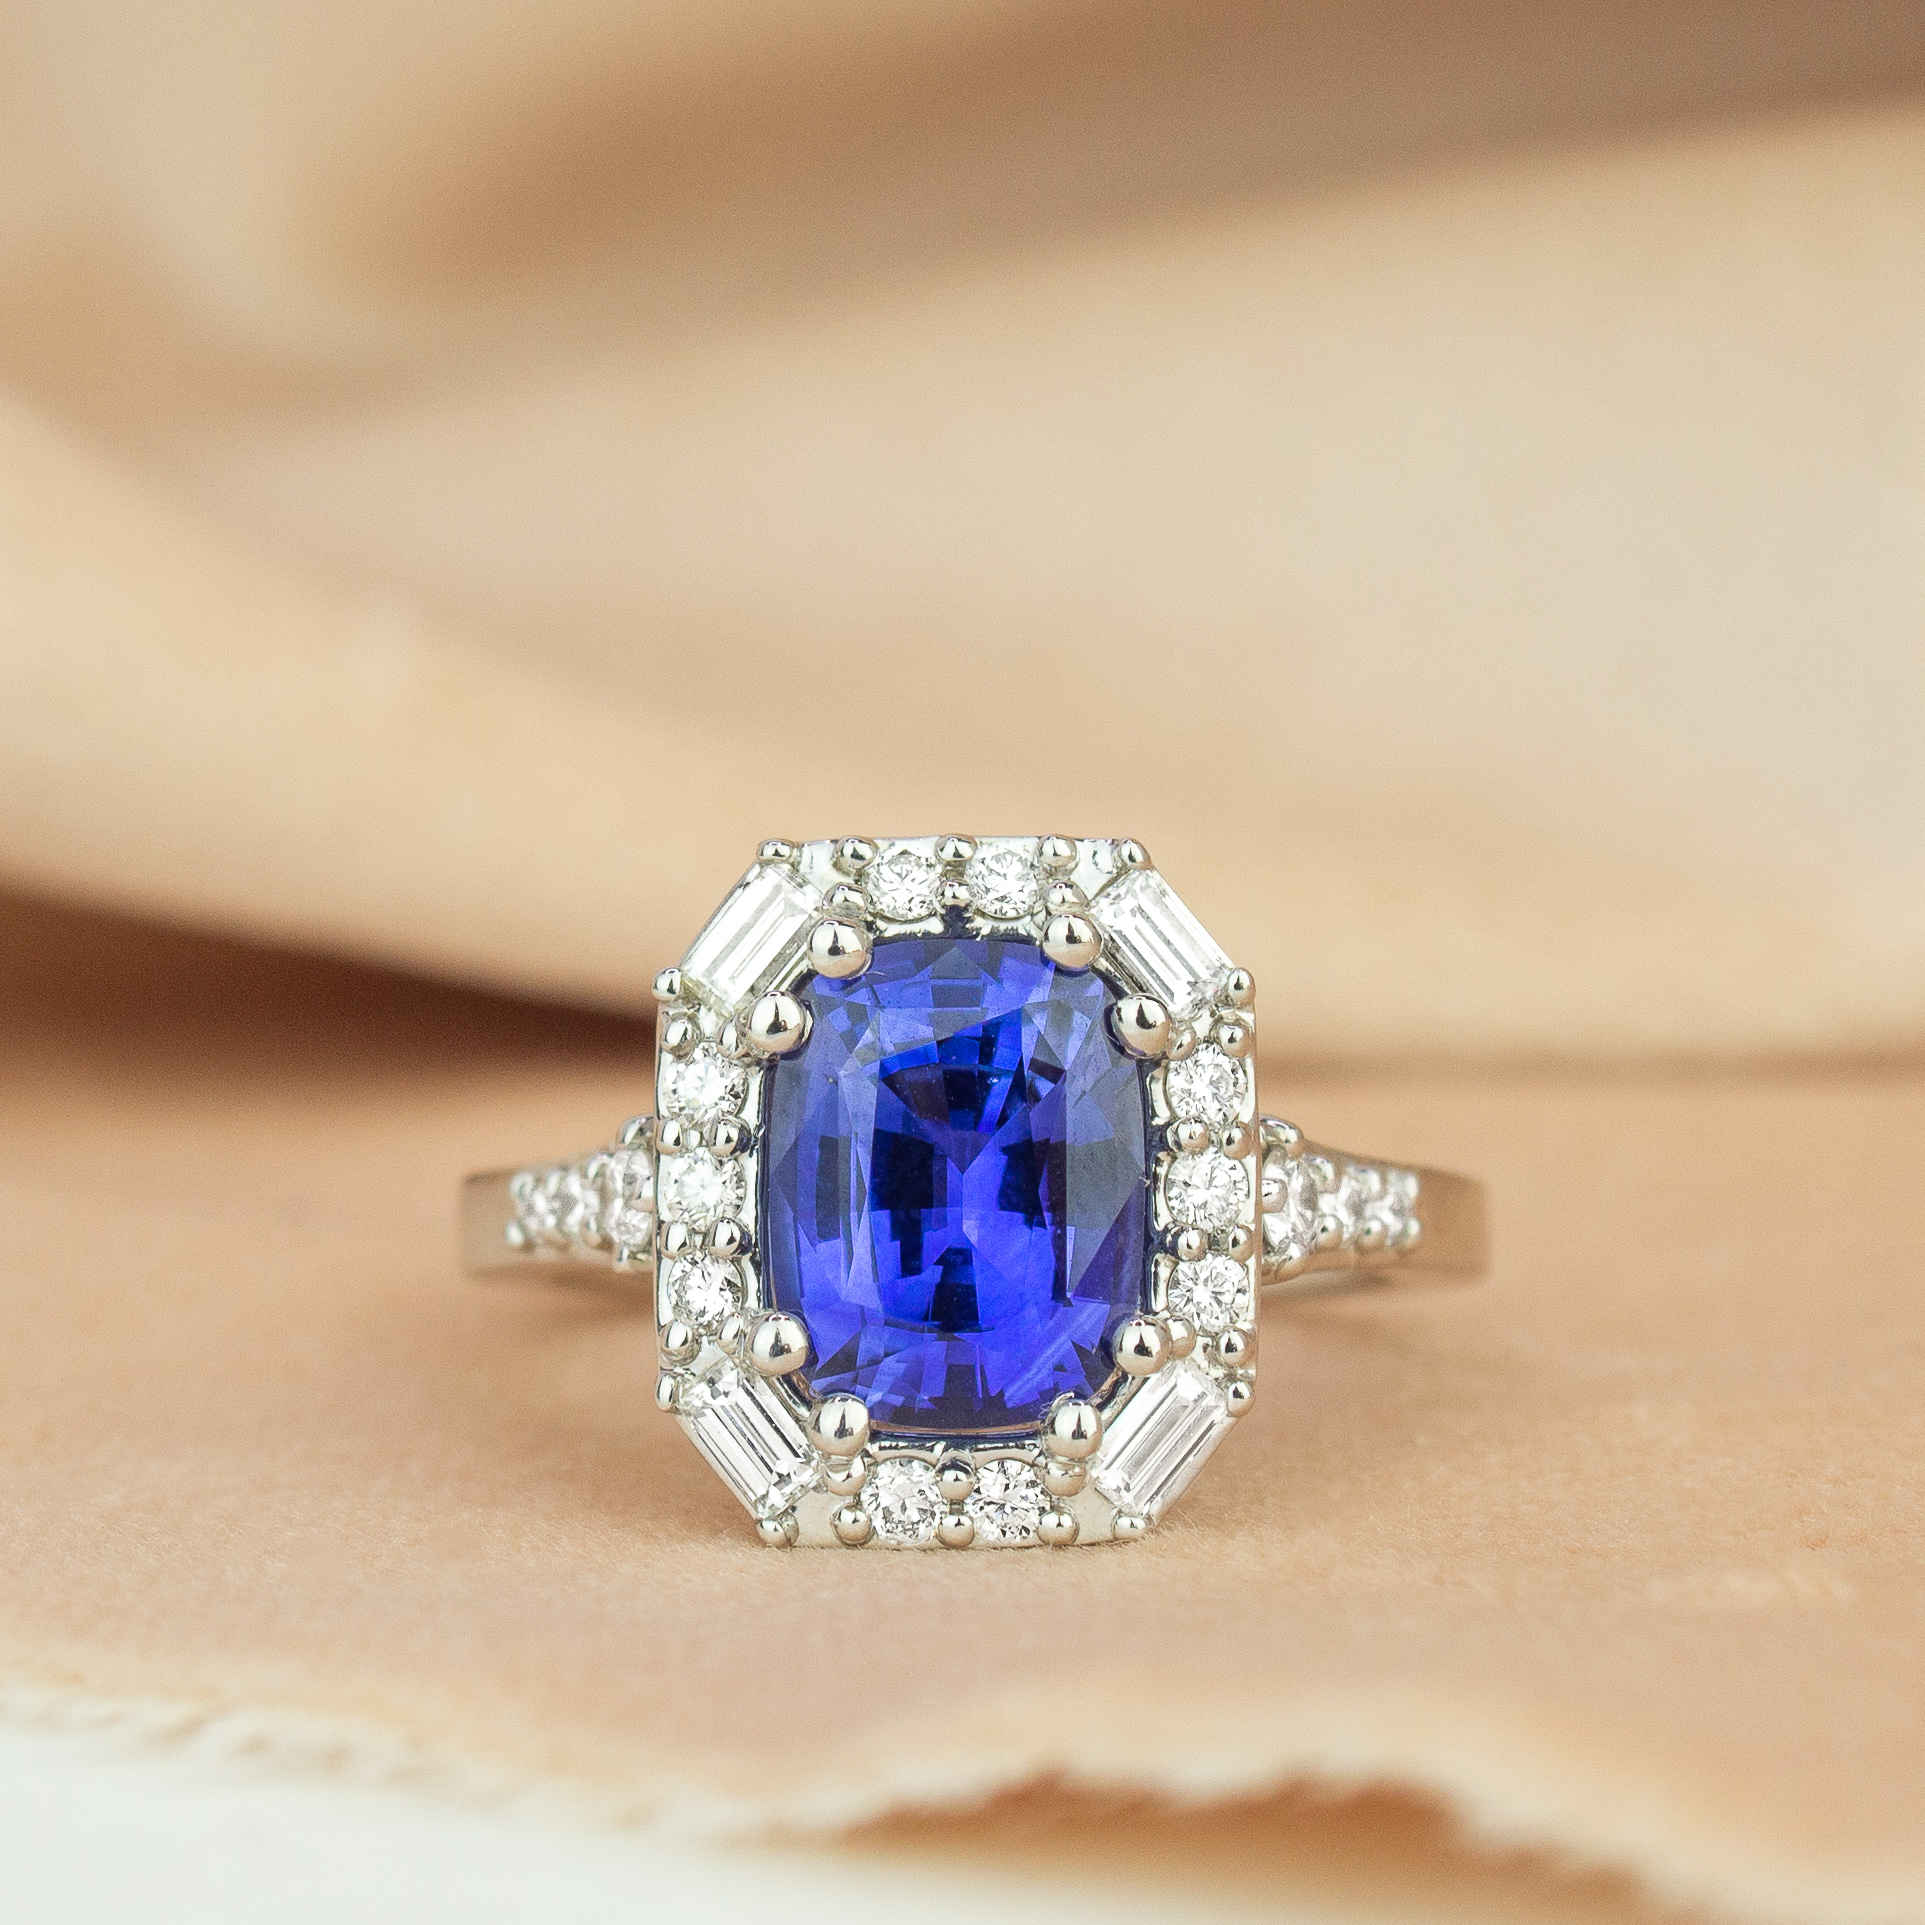 Antique Sapphire Rings Brilliant Earth